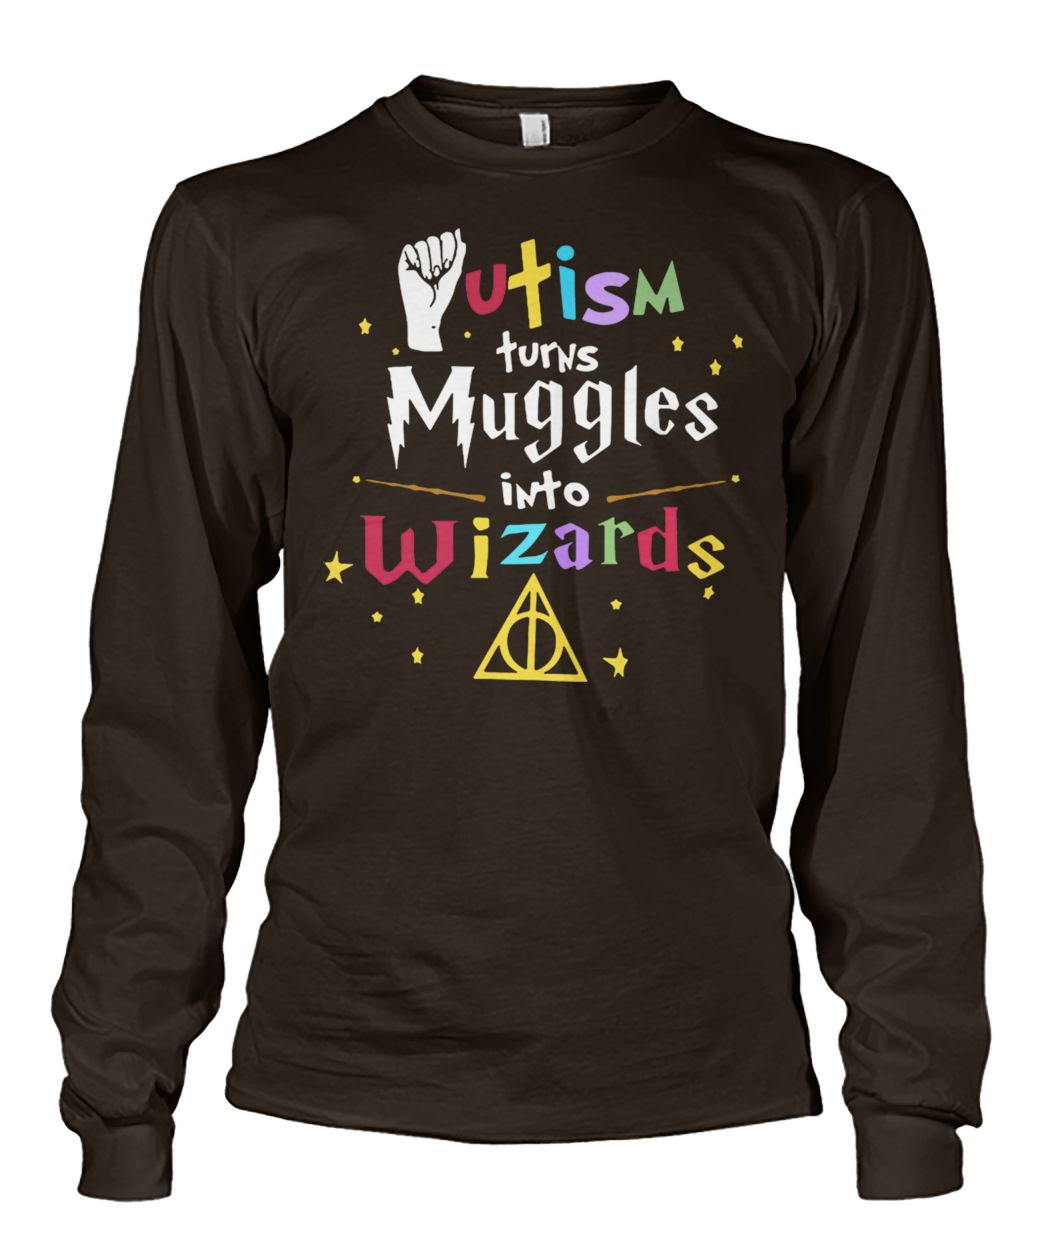 Harry potter autism turns muggles into wizards unisex long sleeve